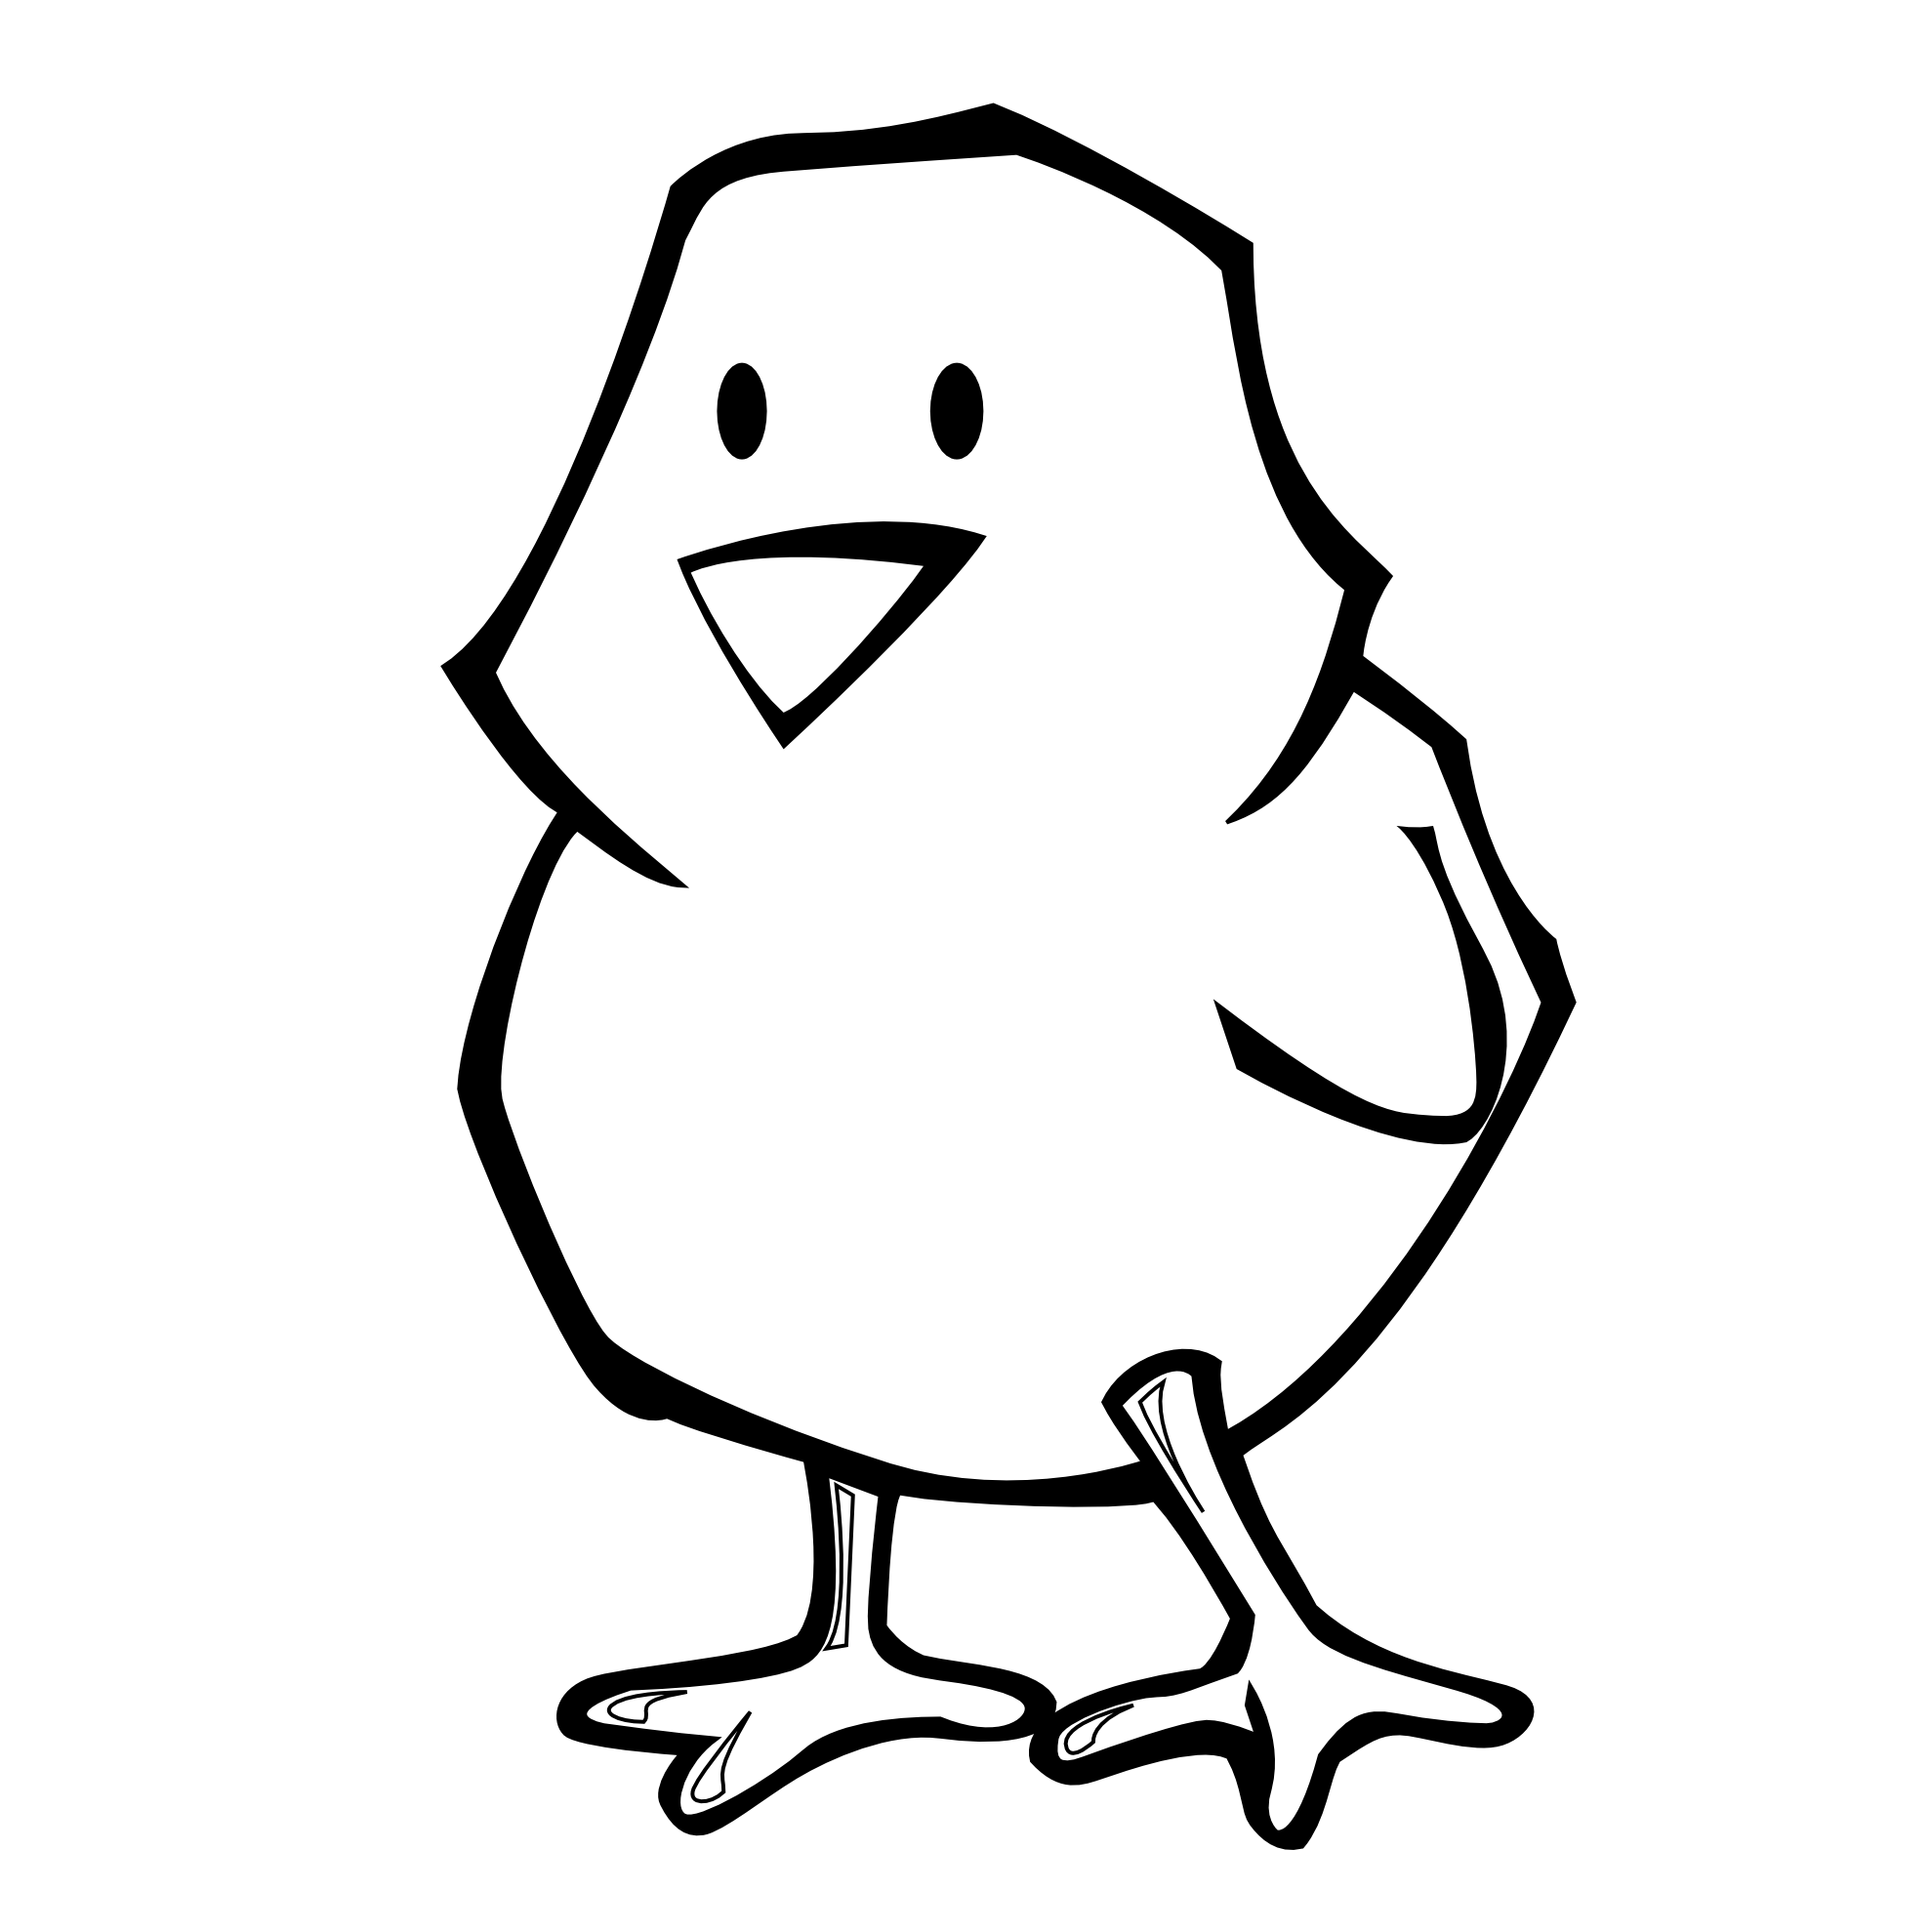 Clipart Chick Black And White.